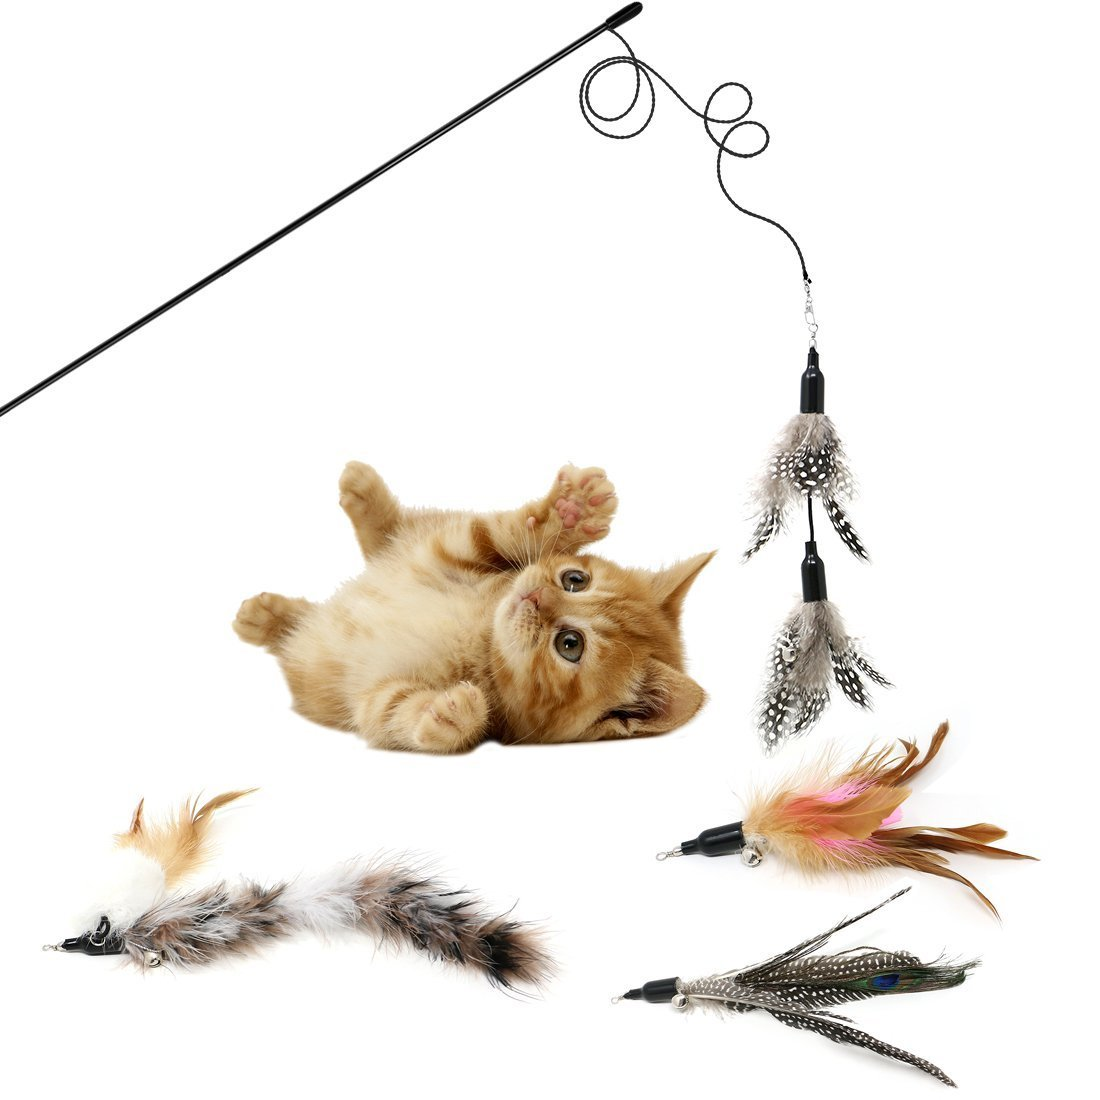 KEKH Feather Wand Cat Toy (Includes 5x Feather Refills), these Natural Feathers are Guaranteed to Drive Your Cat Wild